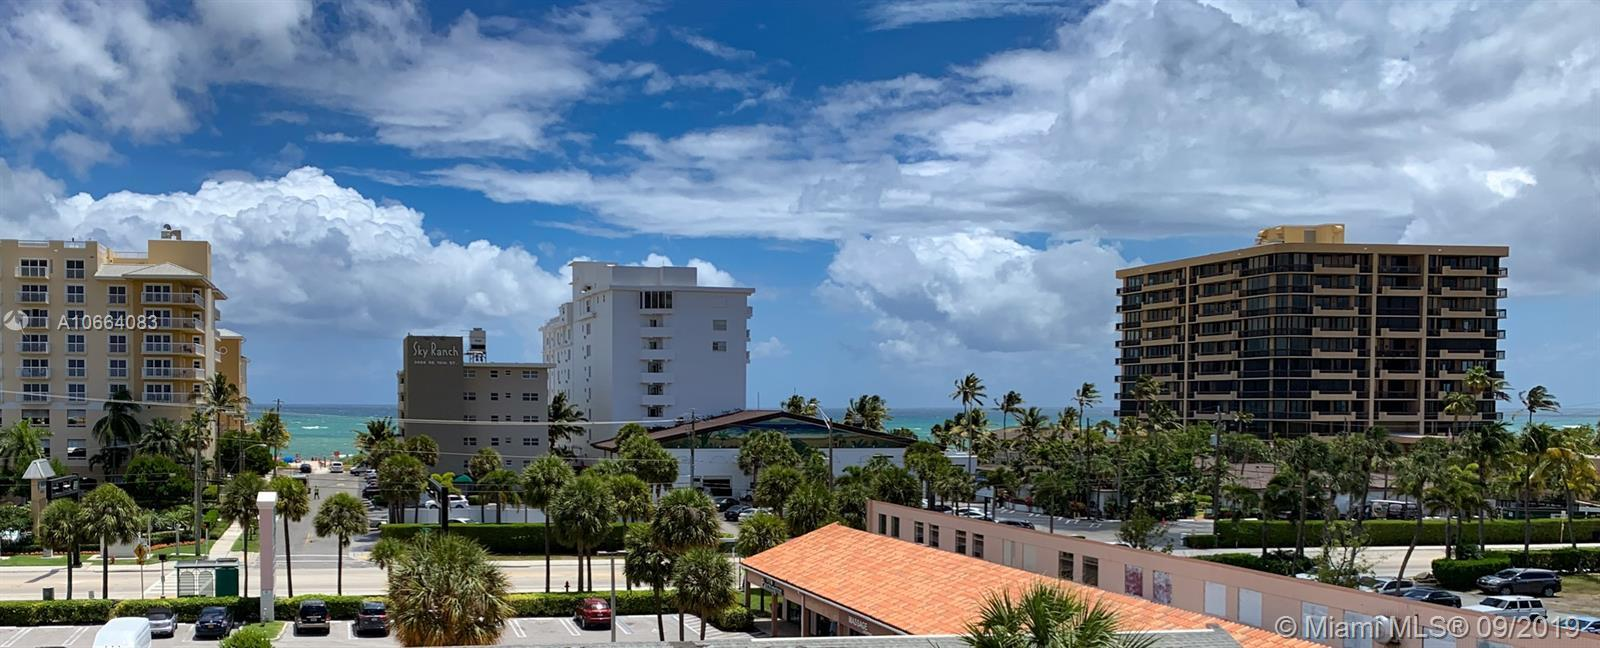 JUST REDUCED!! Magnificently renovated modern 2/2 unit across the street from the OCEAN! Corner unit